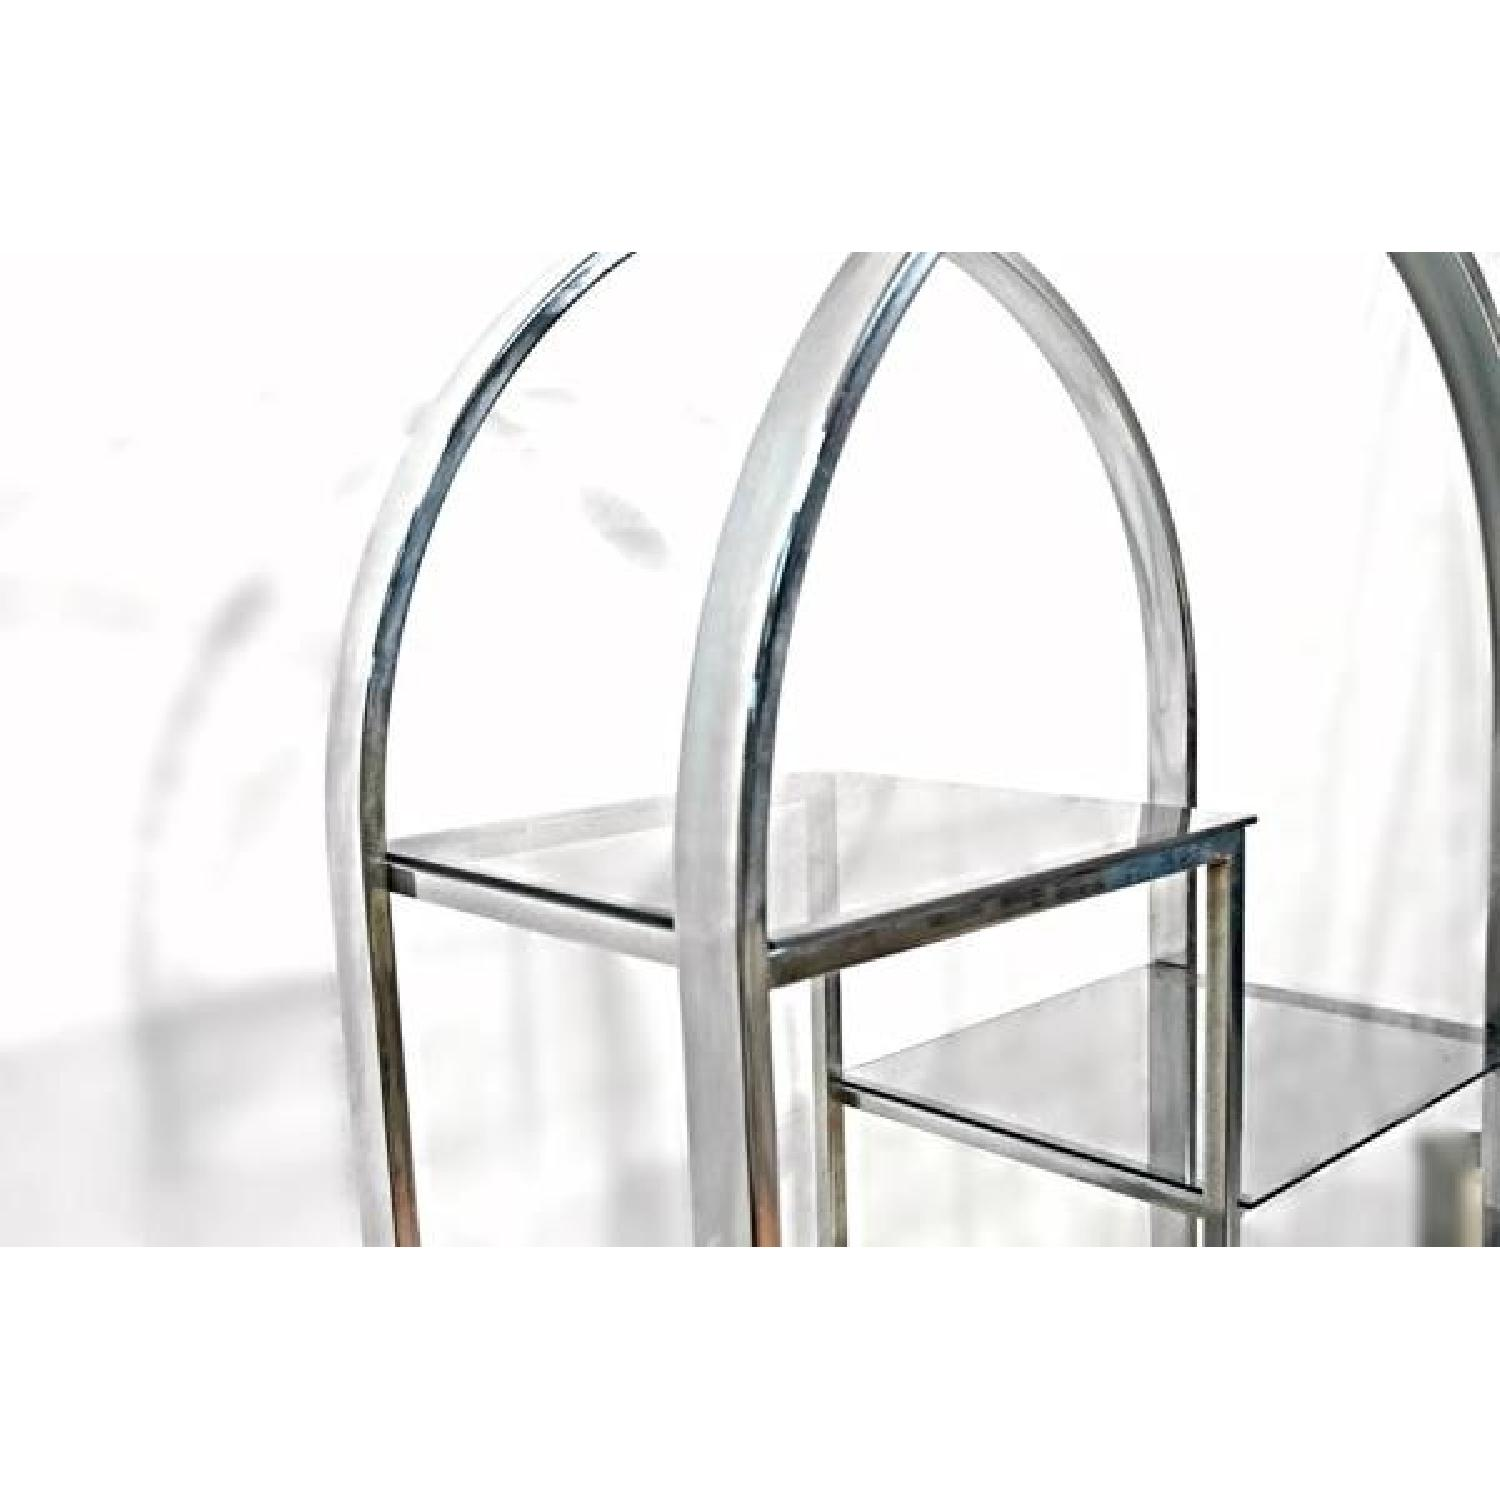 Milo Baughman Chrome Arched Top Etagere Smoked Glass Shelves - image-1